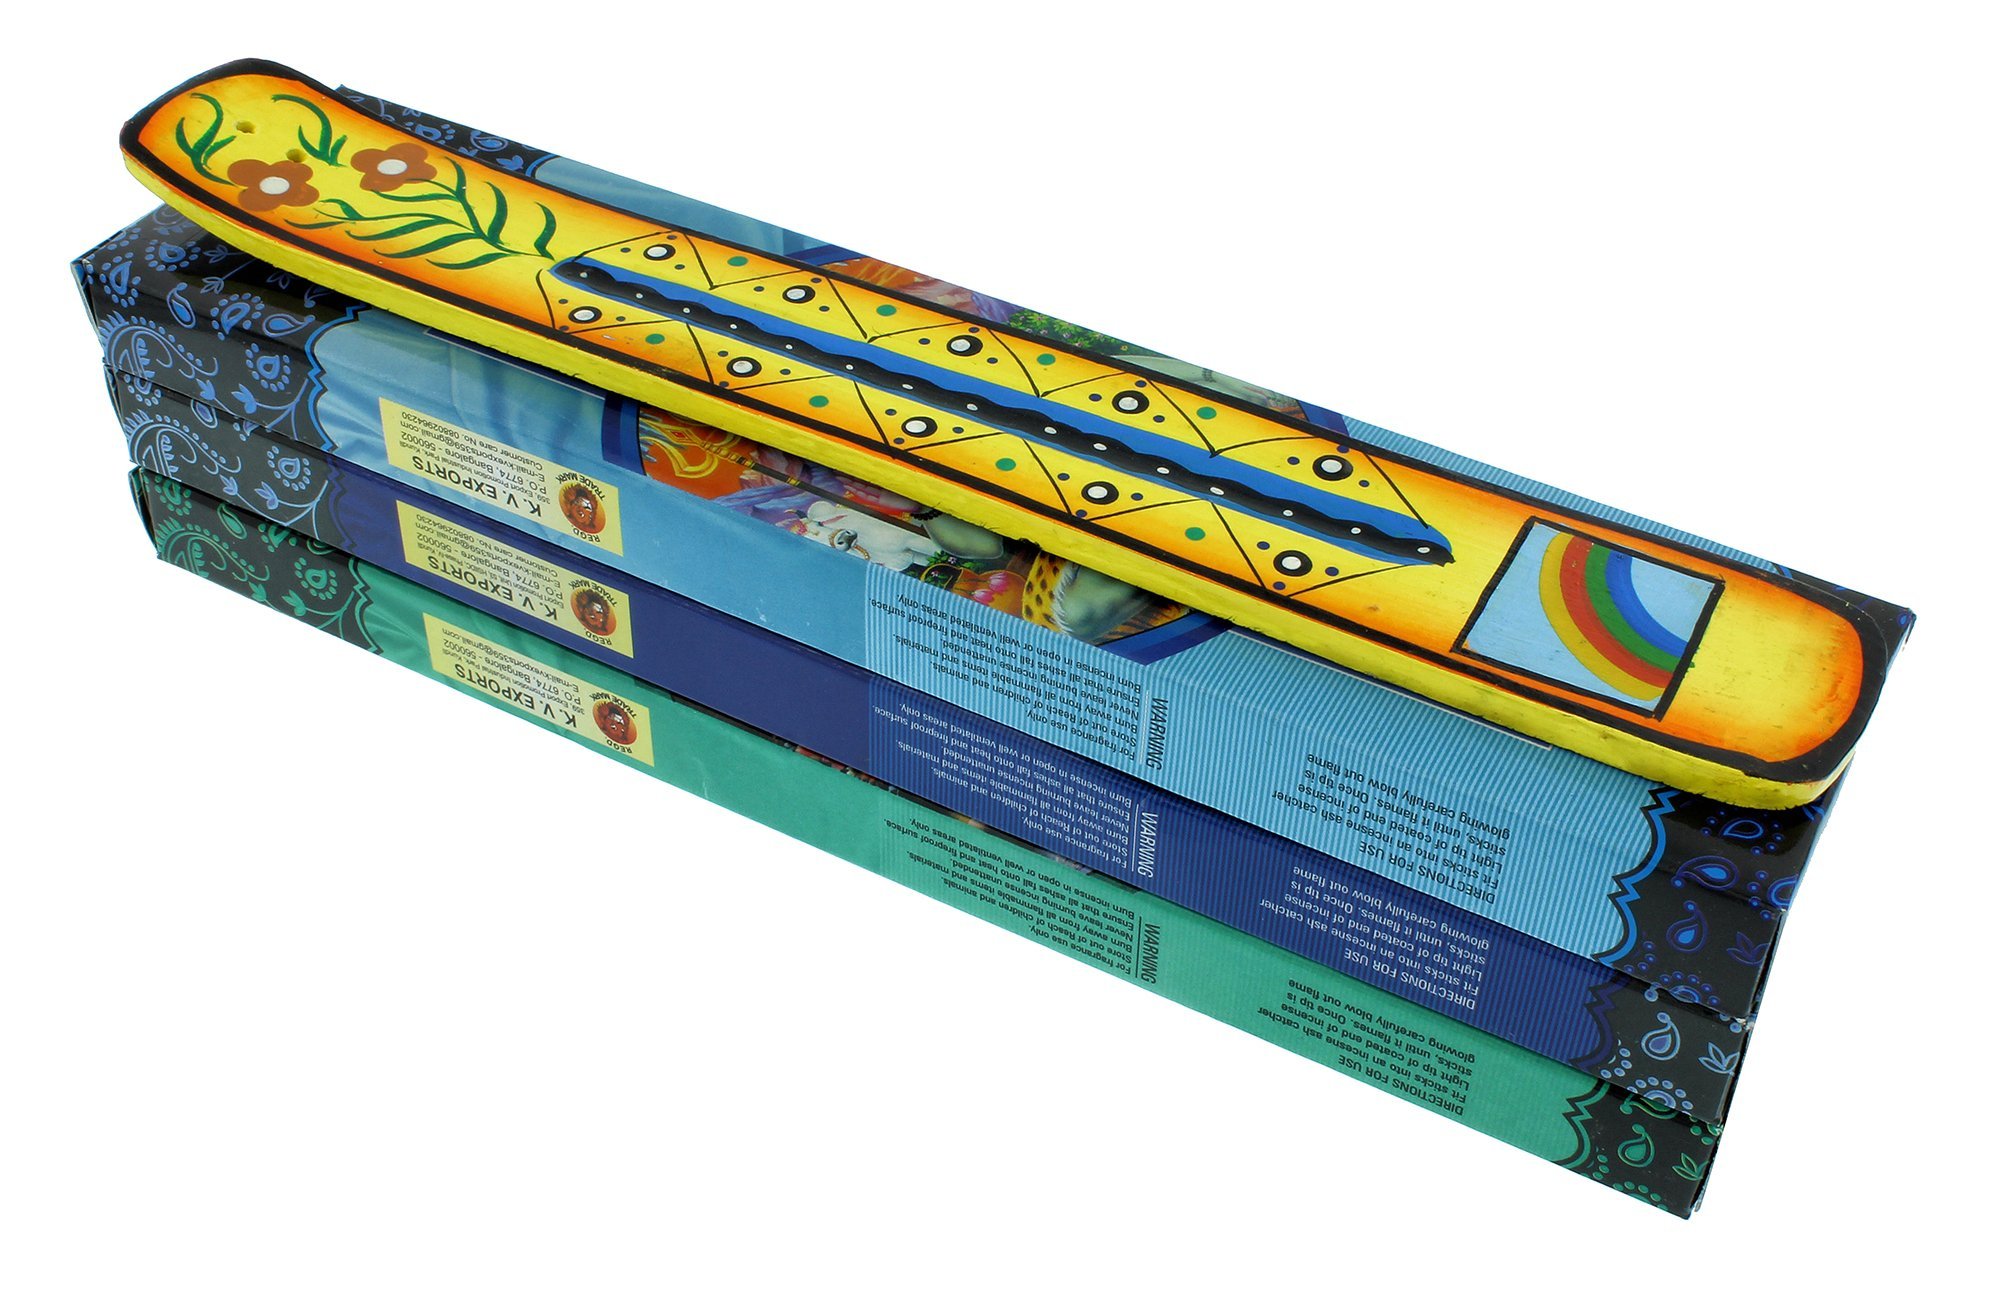 Incense Gift Pack | 1 Hand Painted Incense Burner and 3 Boxes of Incense | Rainbow Design | Yellow | by Zen Mood